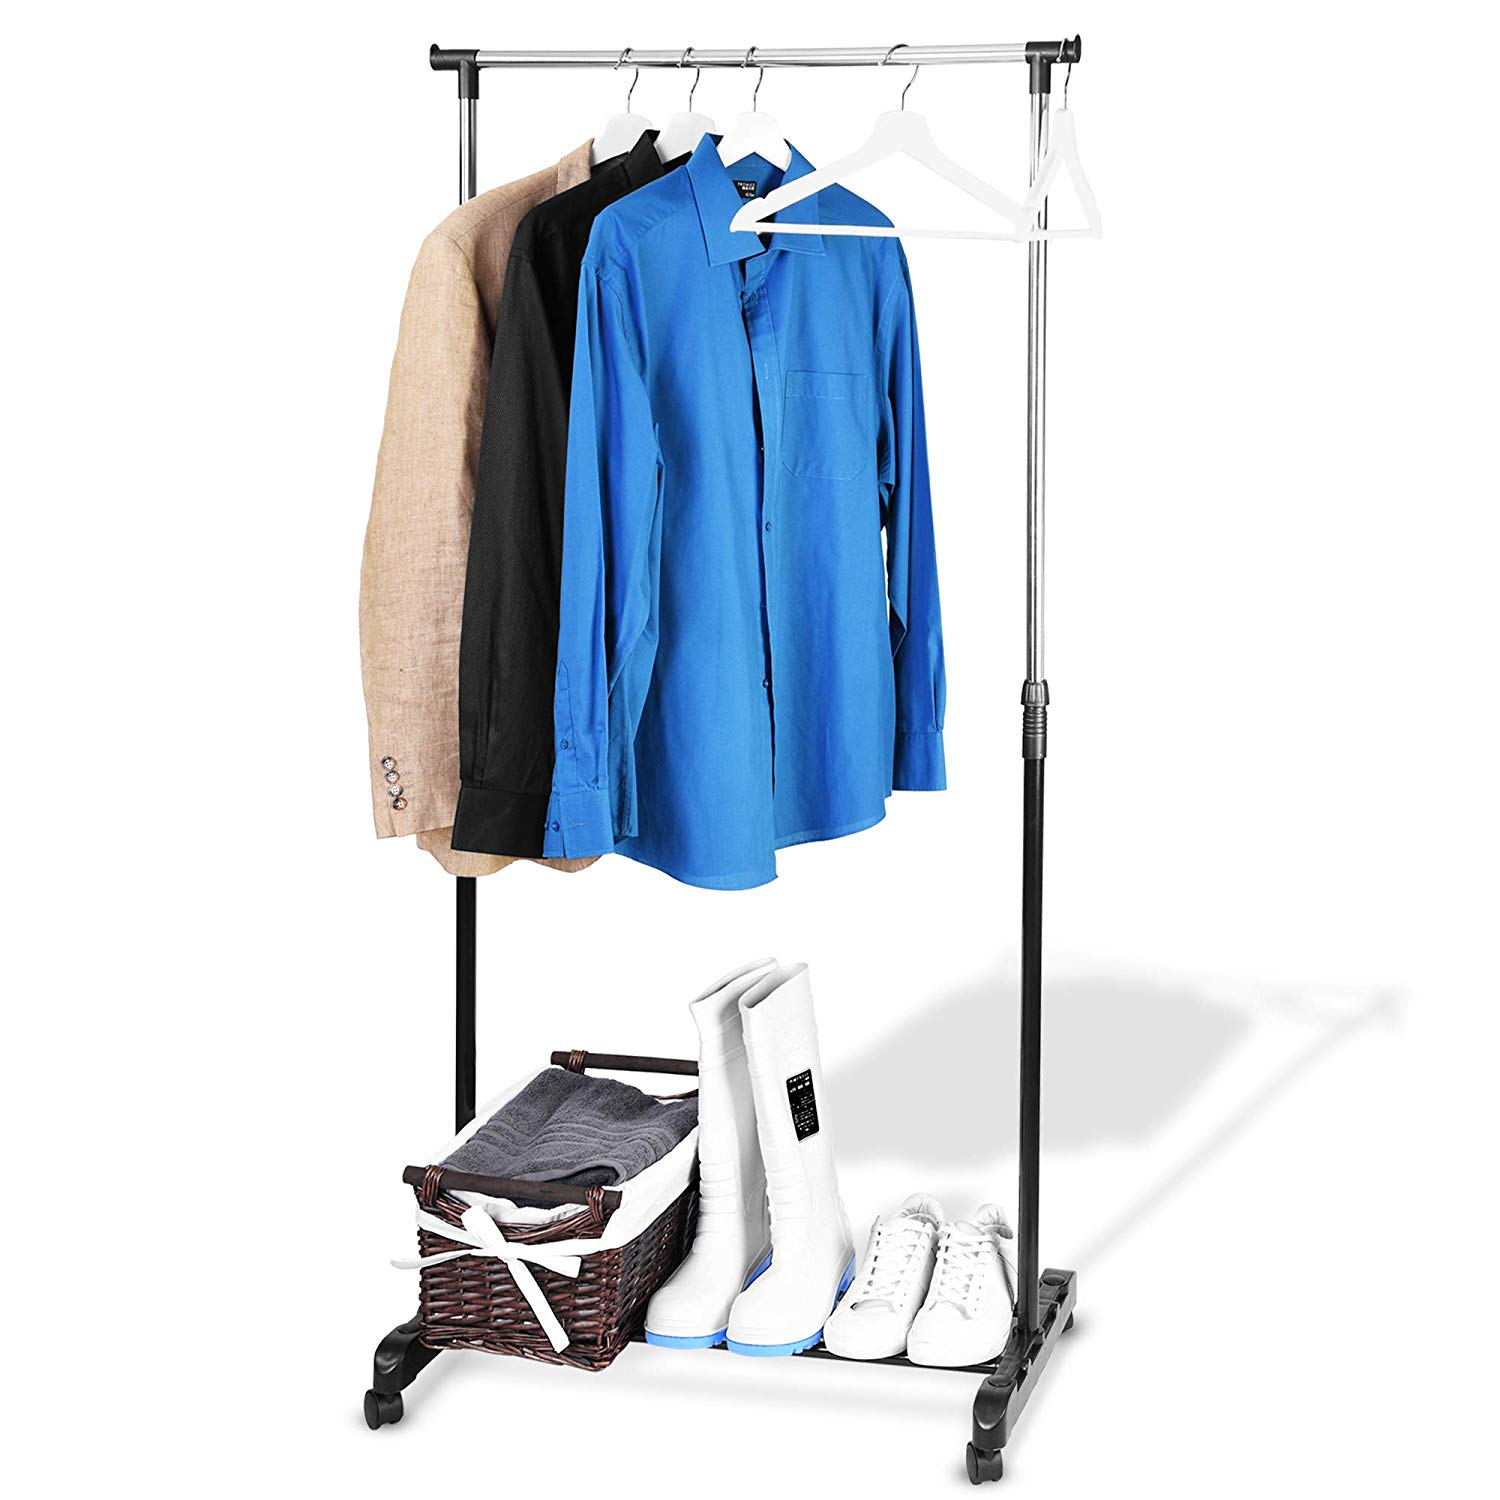 Garment Rack On Wheels Clothes Hanging Rail Storage Stand -FREE delivery